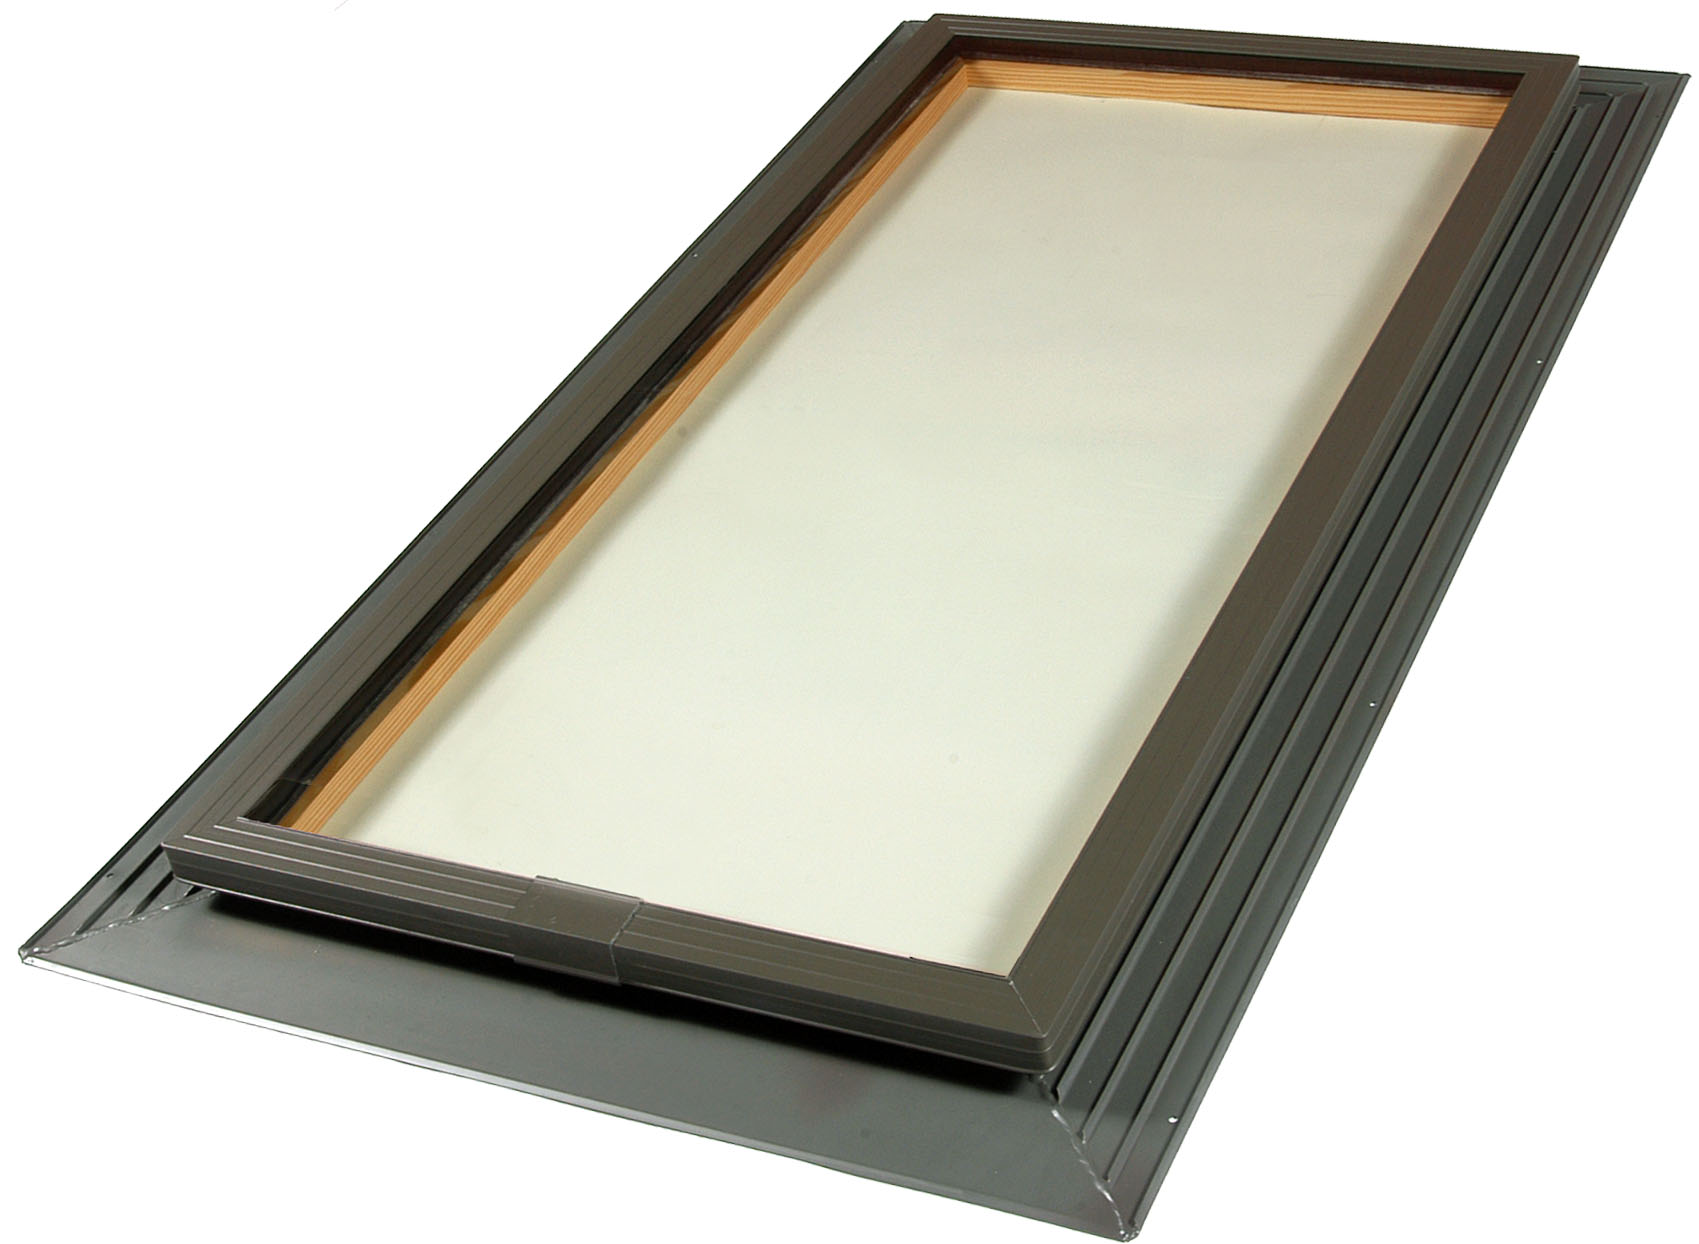 Sun Tek Skylightsfixed Glass Skylight From Sun Tek